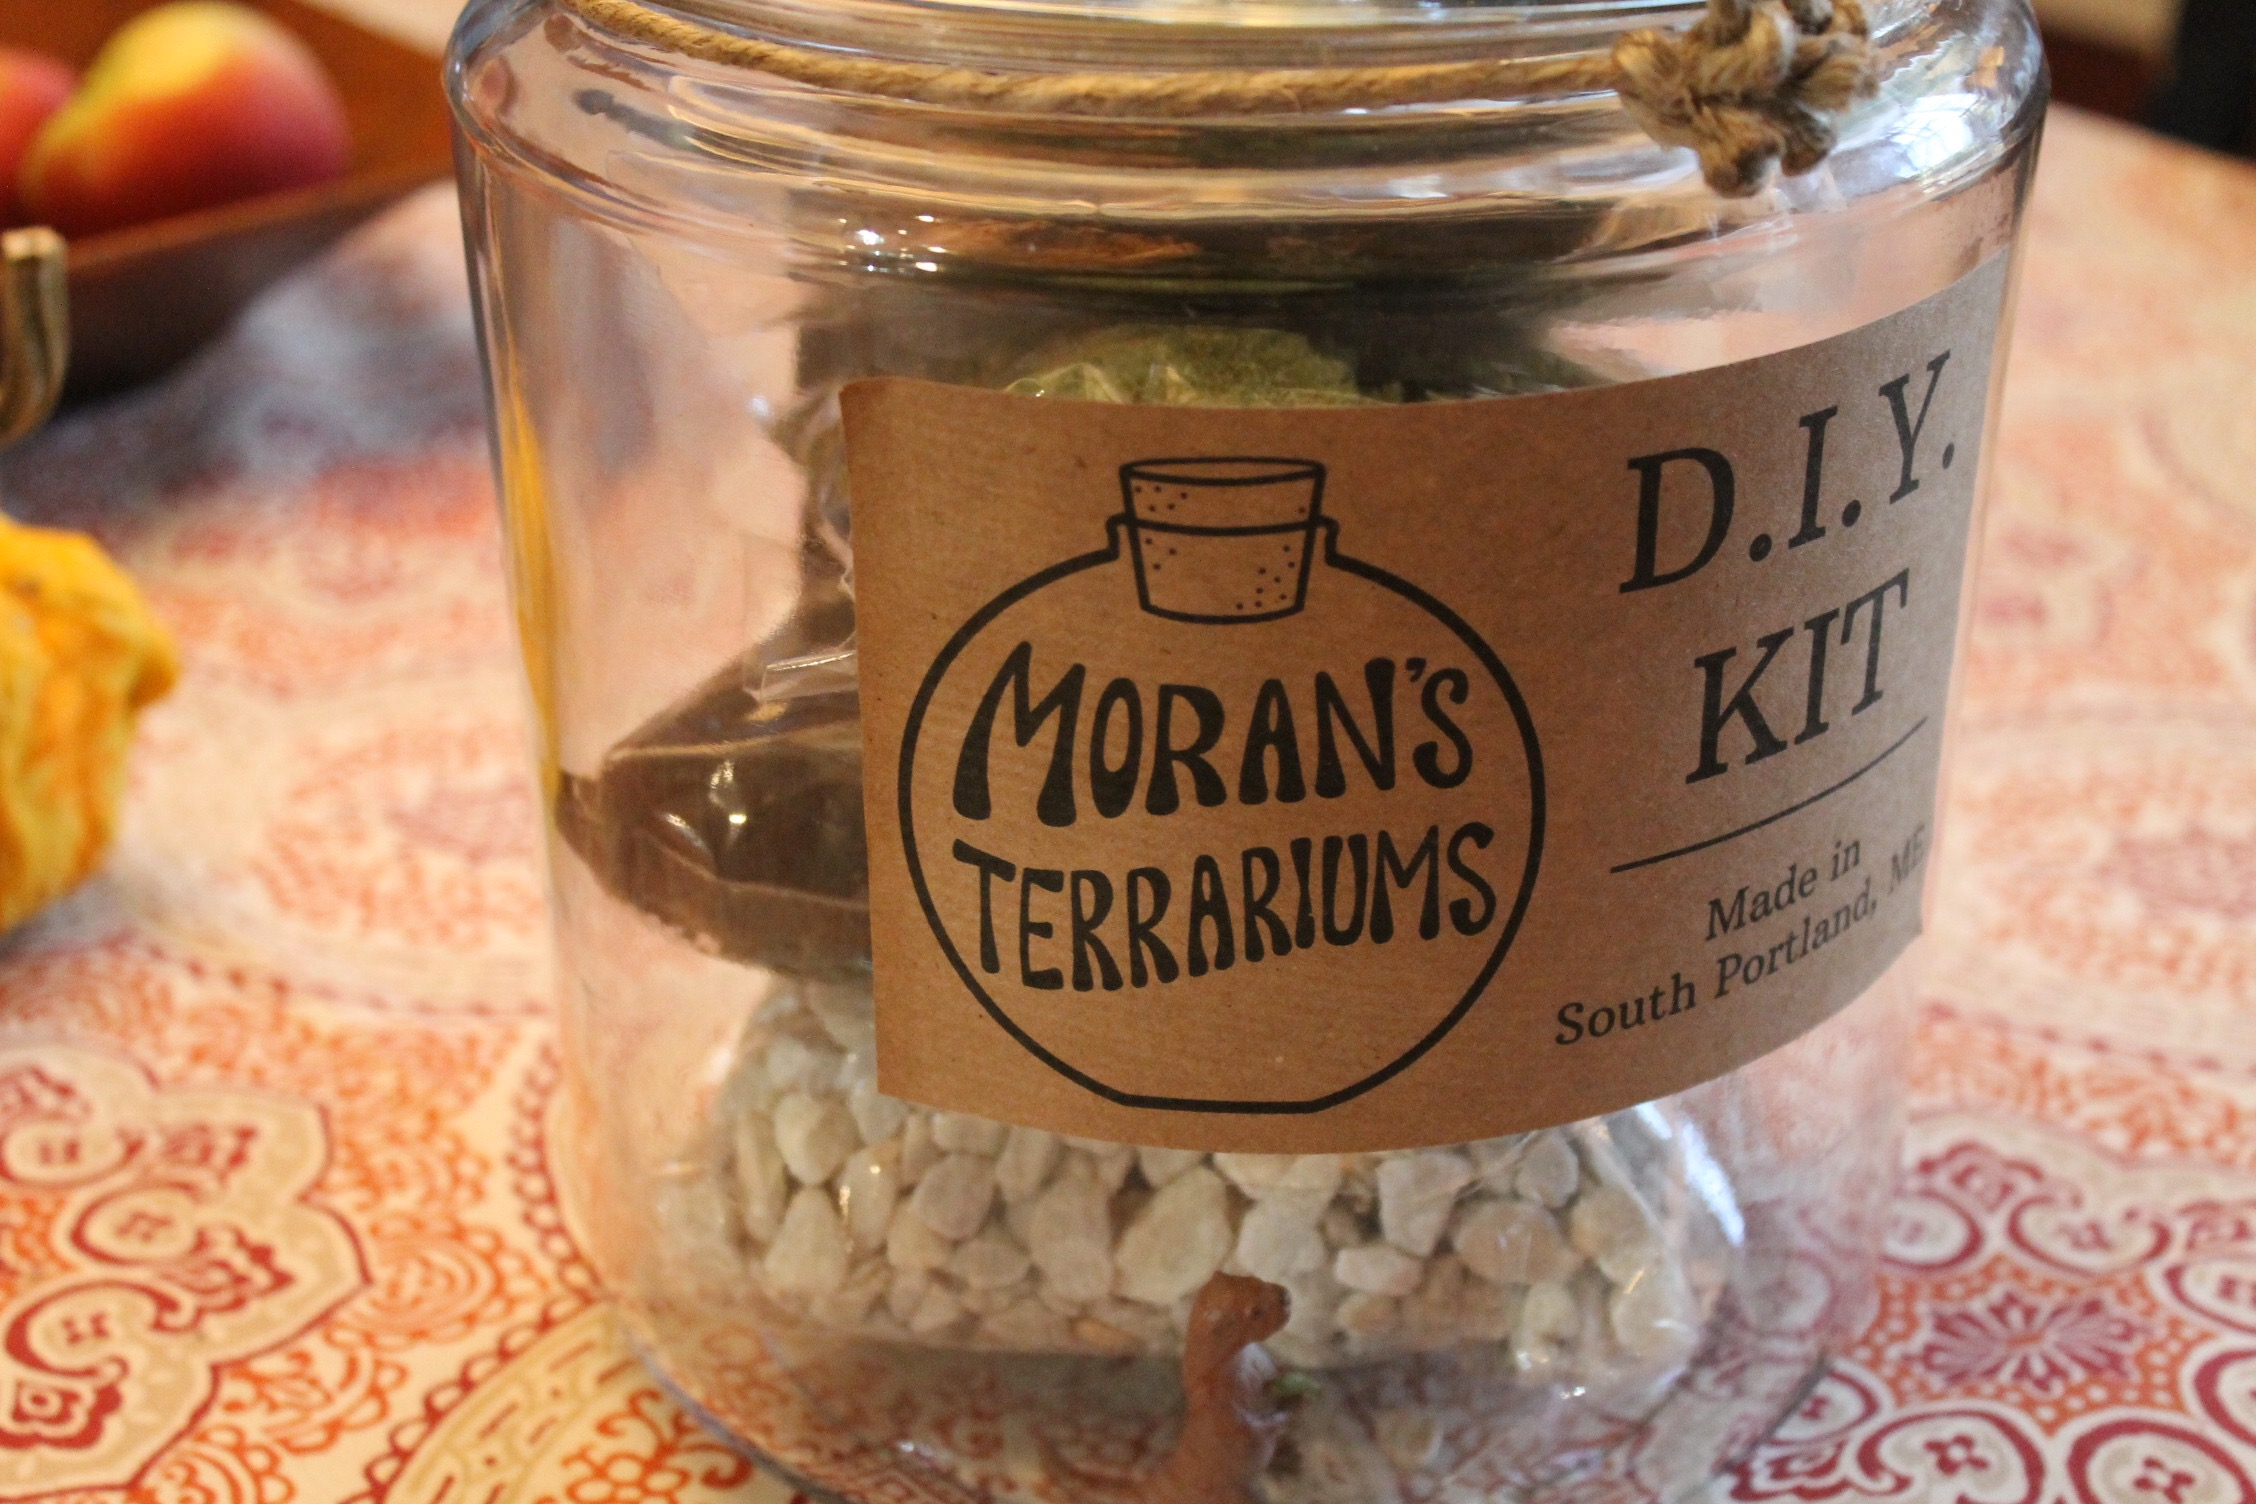 Illustrator Hannah Rosengren designed the labels for the jars.